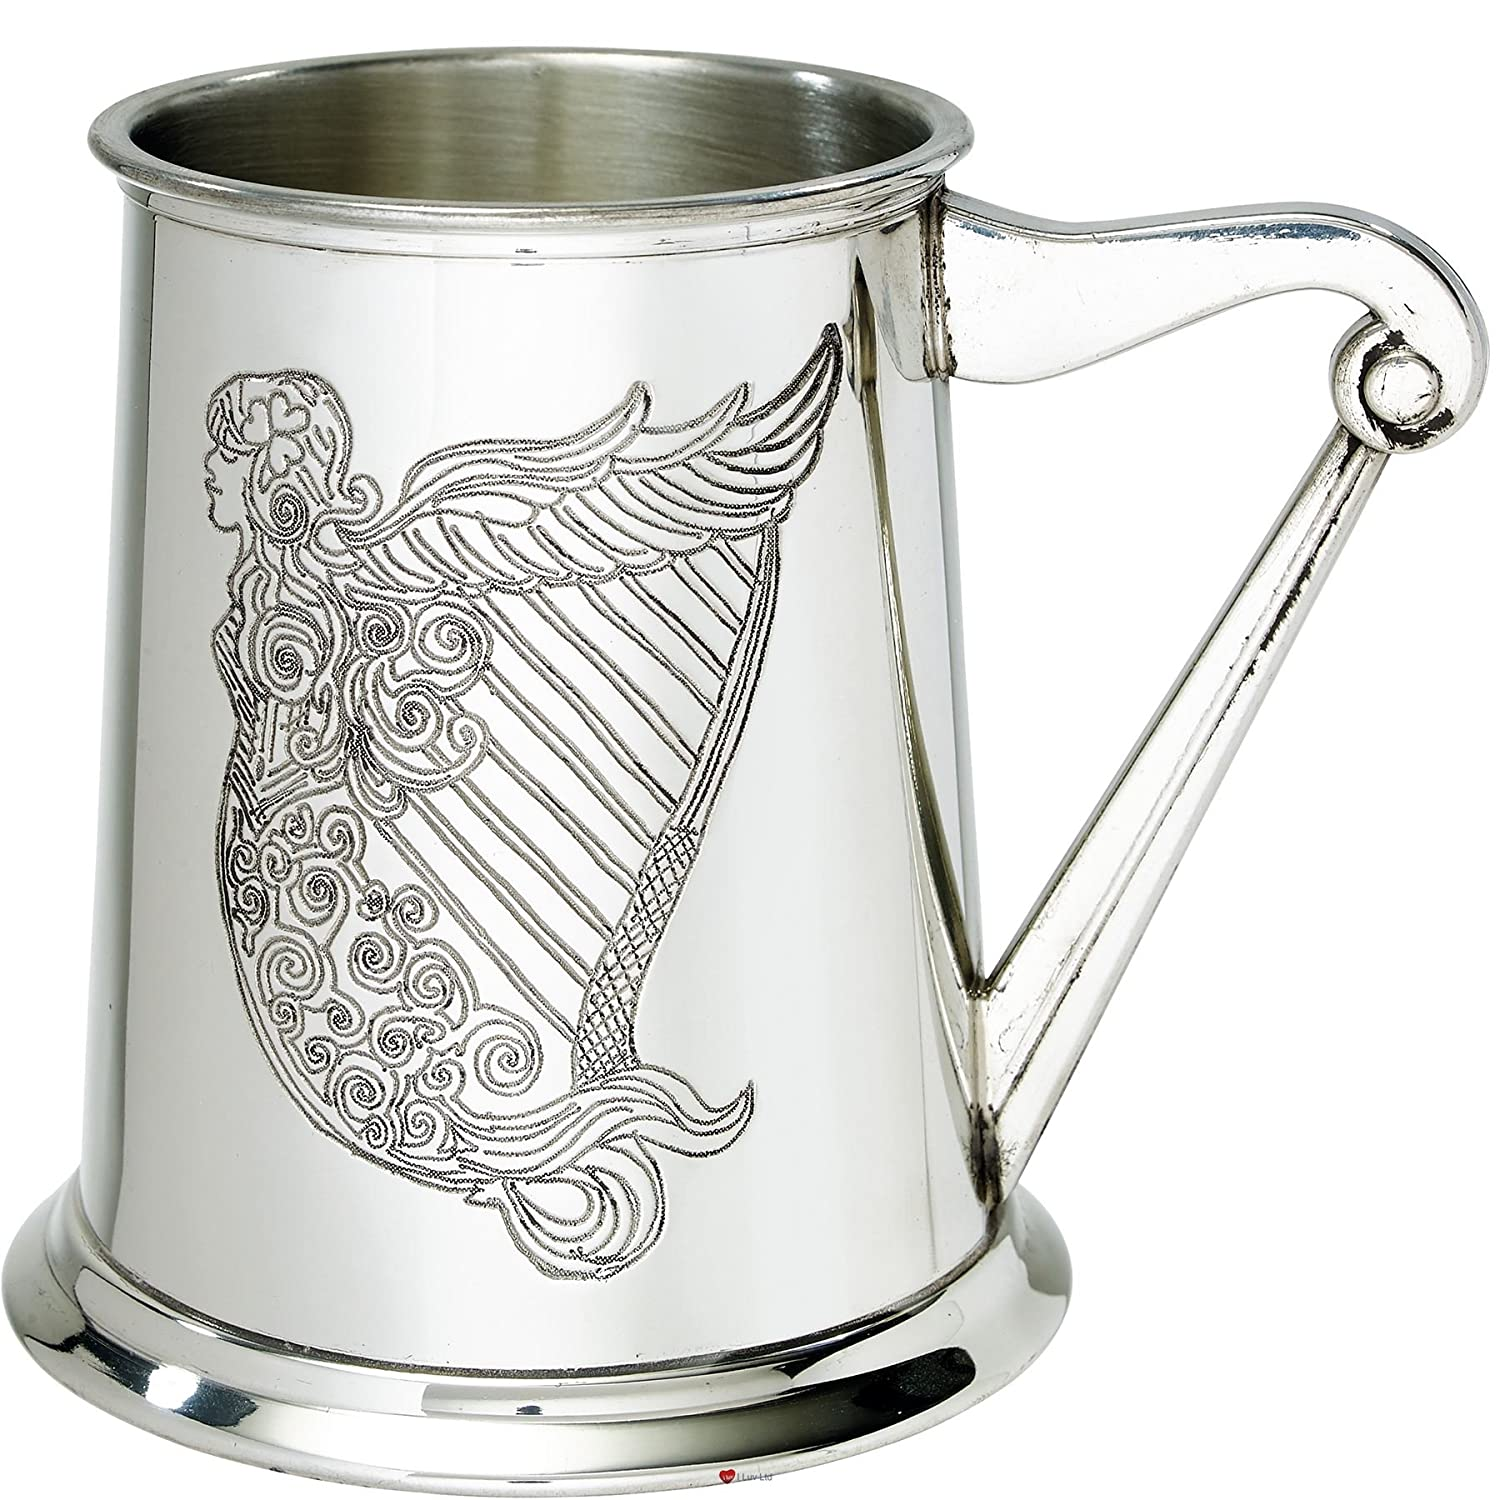 Tankard 1 Pint Embossed Ireland Harp Pewter Irish Harp Shape Handle Ideal For Engraving